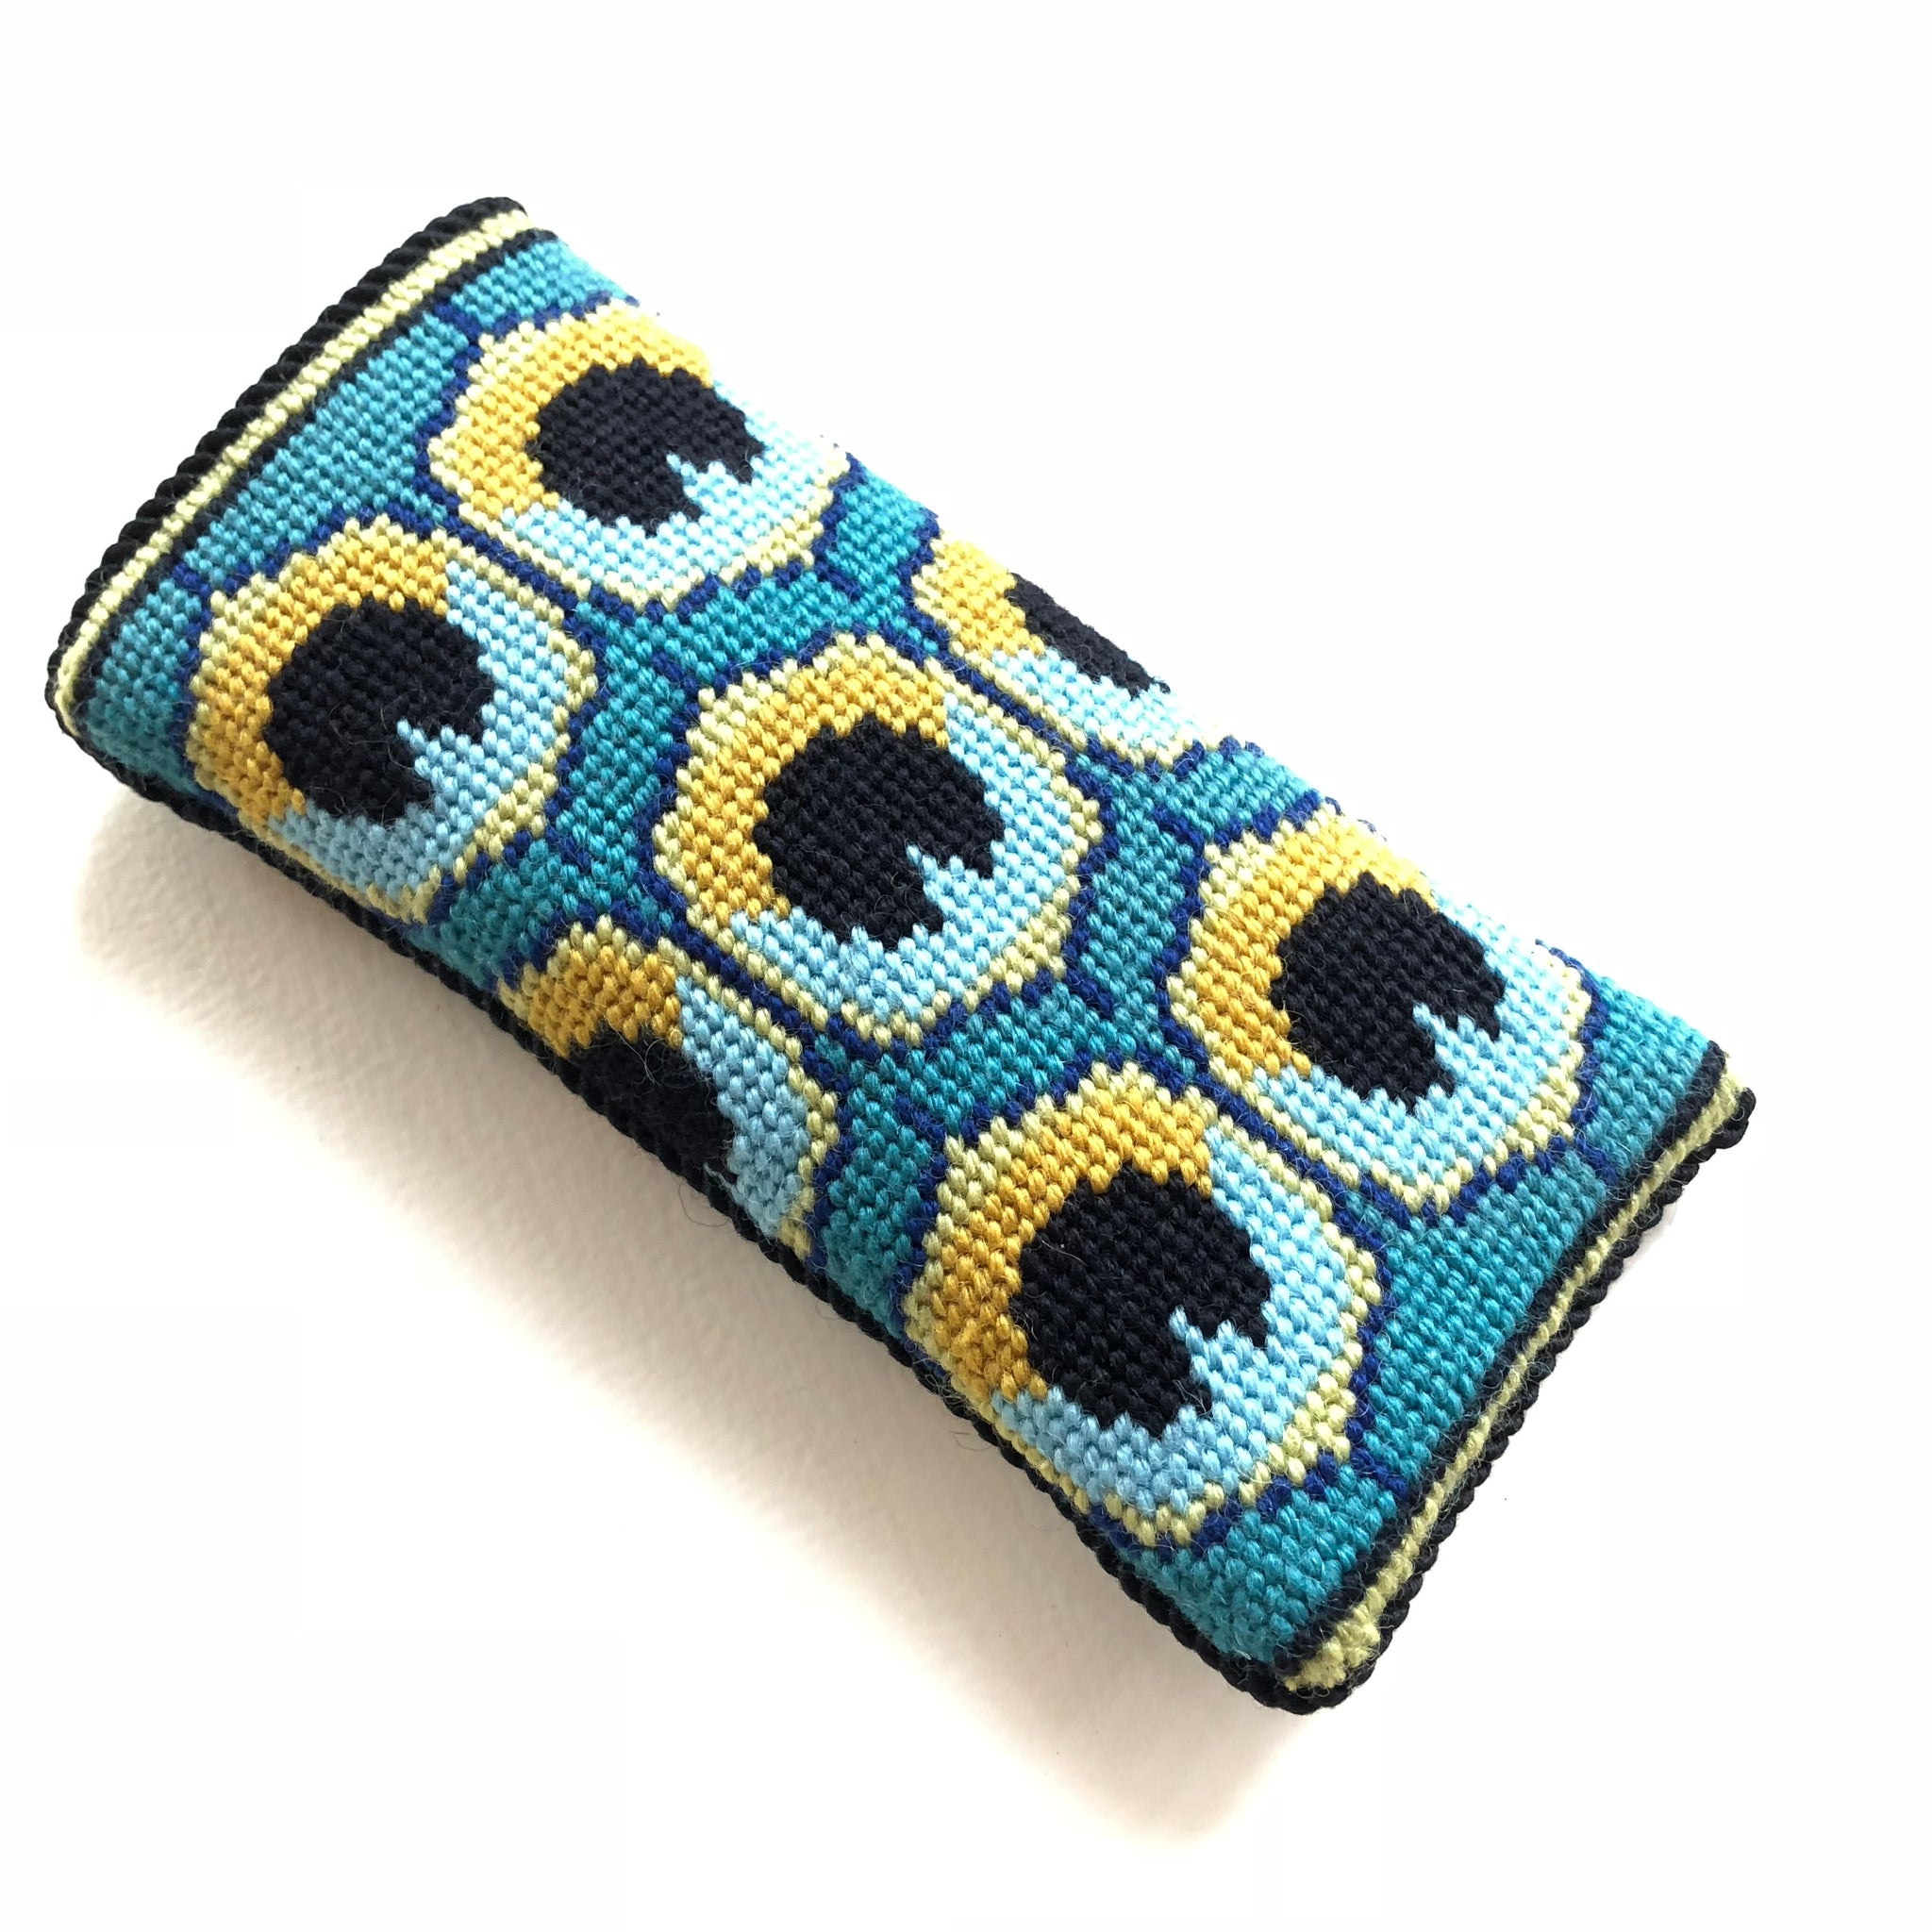 Eyeglass Case - Needlepoint Kit with Stitch Painted Canvas: Peacock Design